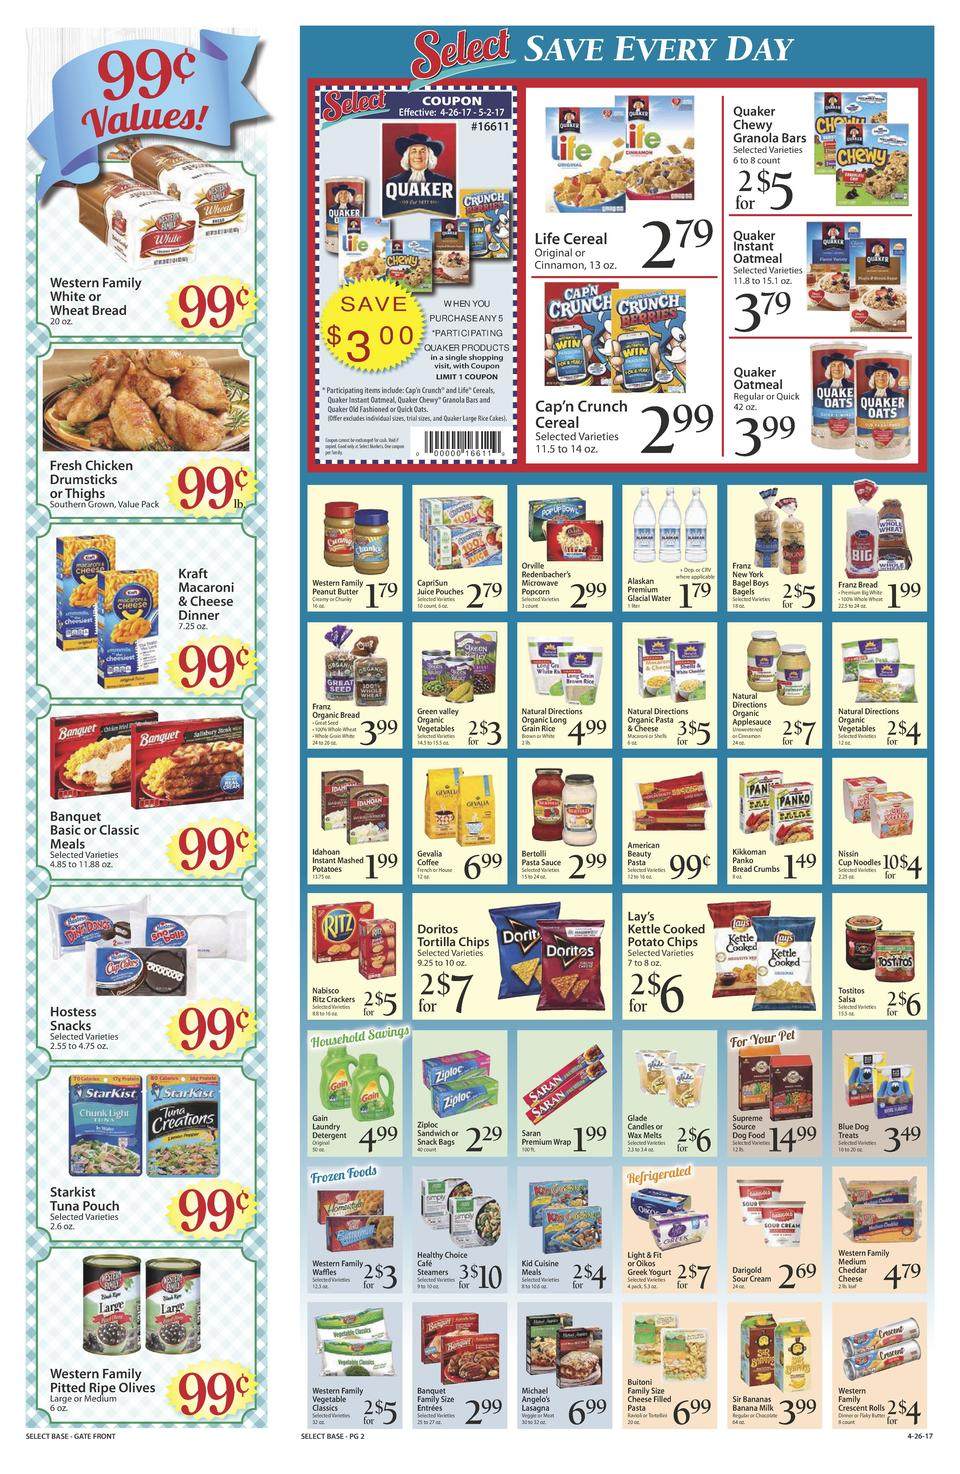 SAVE EVERY DAY COUPON  Quaker Chewy Granola Bars  Effective  4-26-17 - 5-2-17   16611  Selected Varieties 6 to 8 count  5 ...